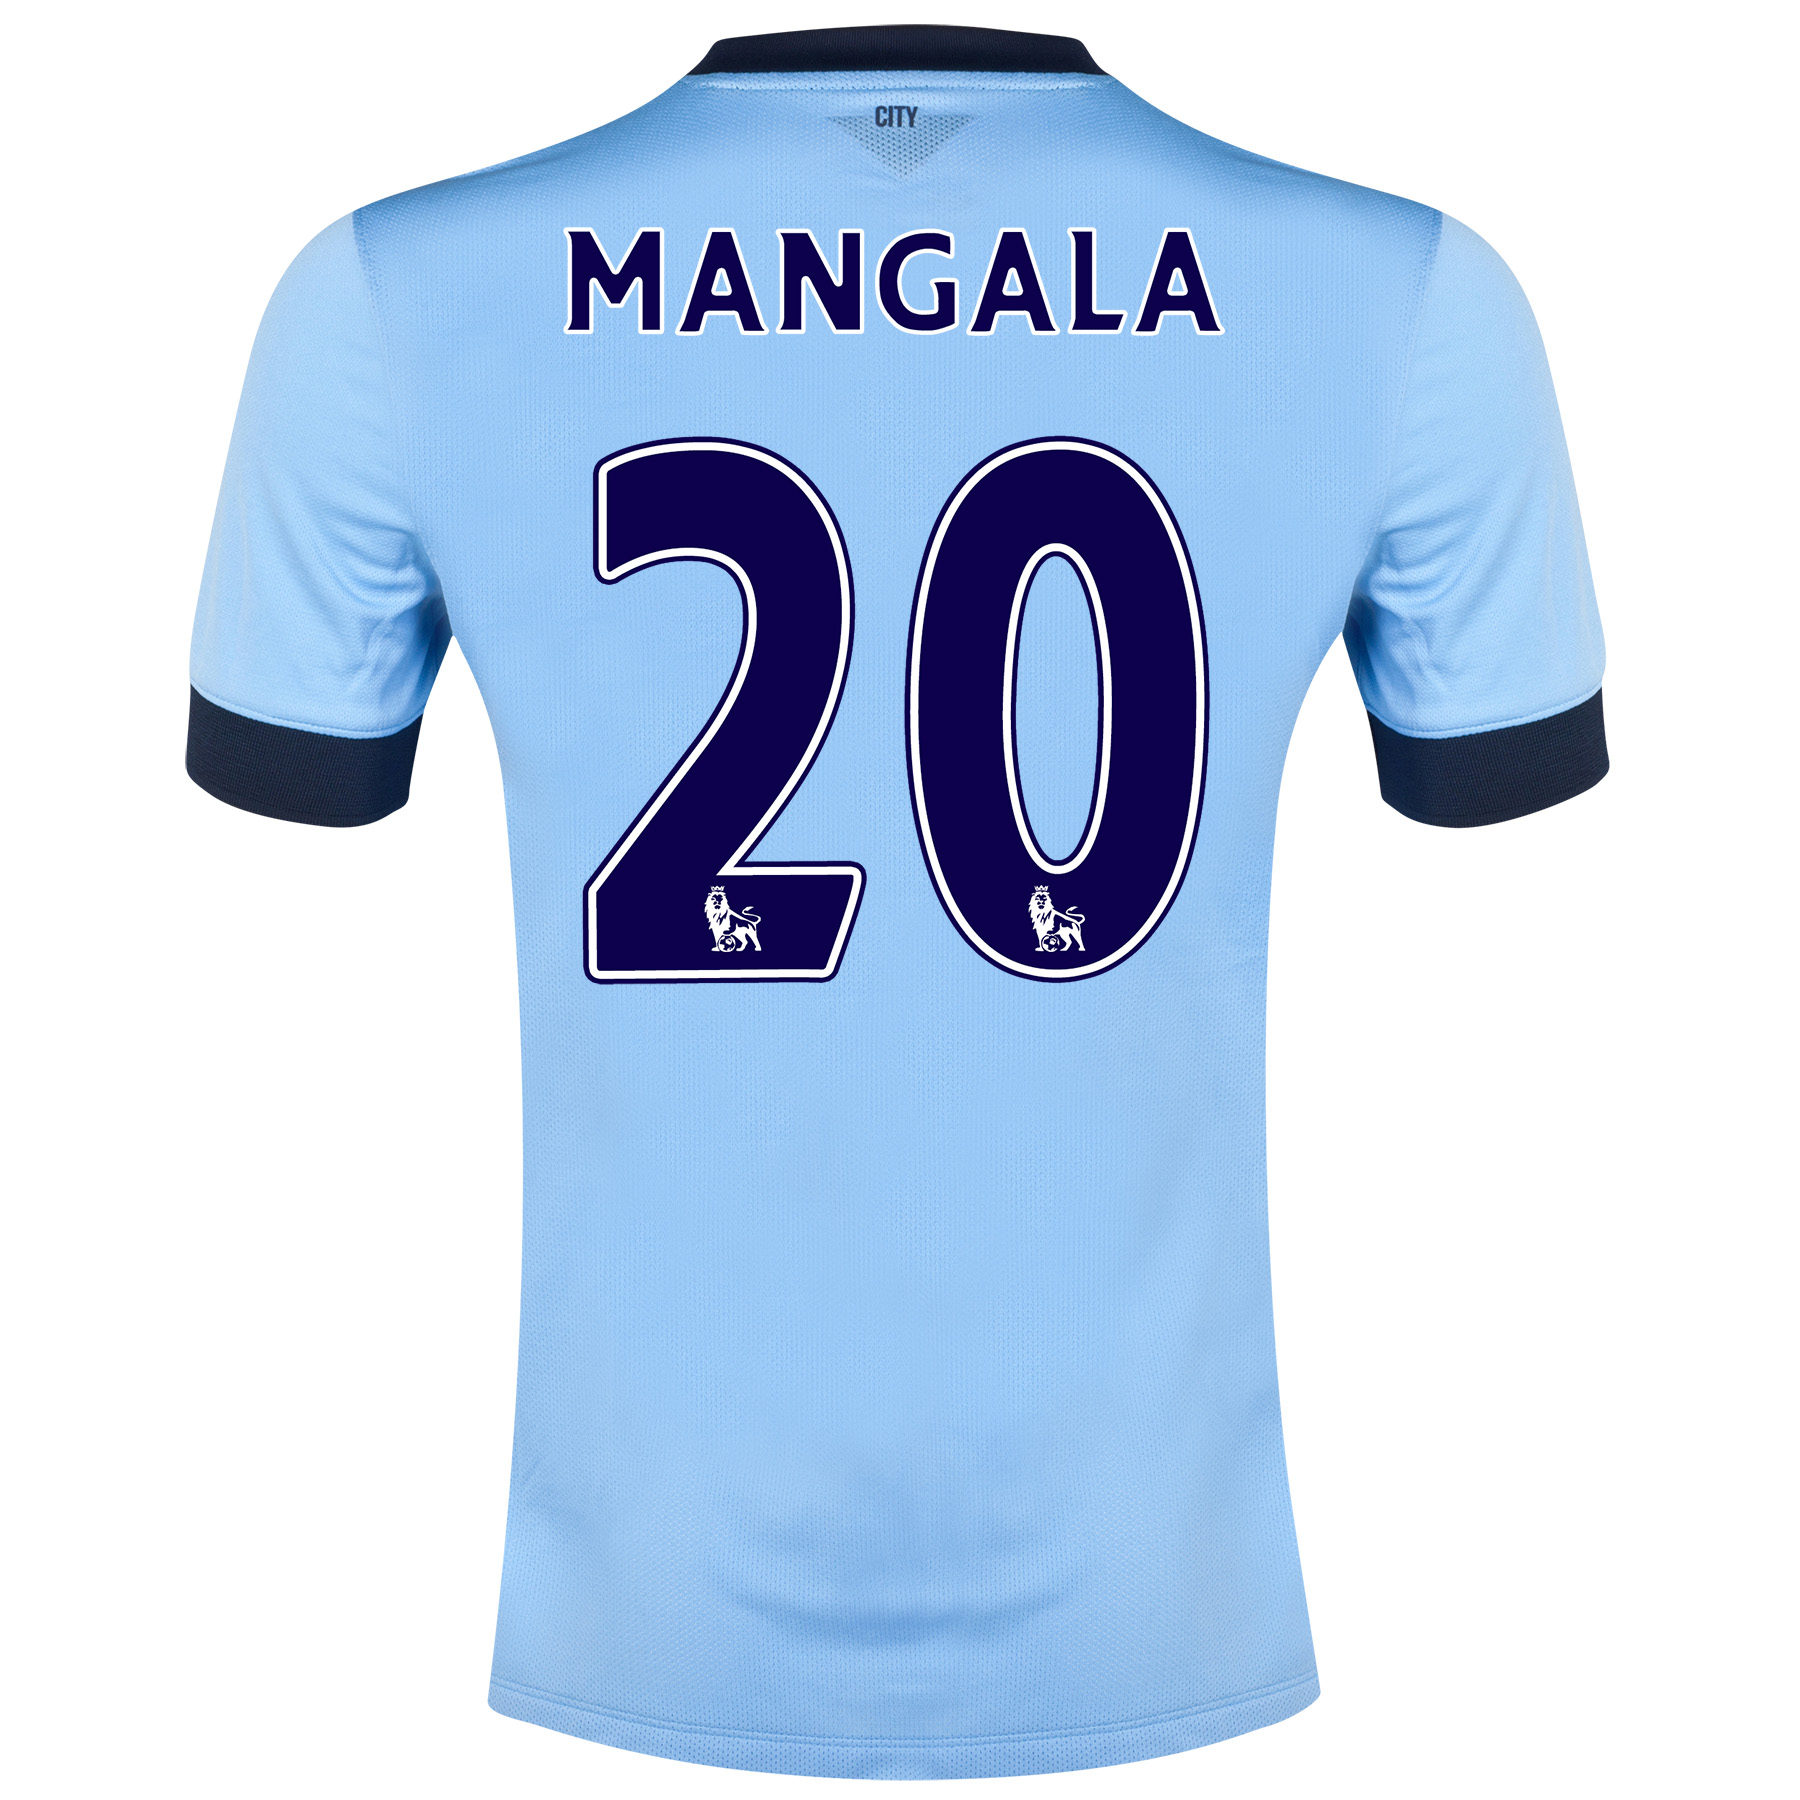 Manchester City Home Shirt 2014/15 - Kids Sky Blue with Mangala 20 printing